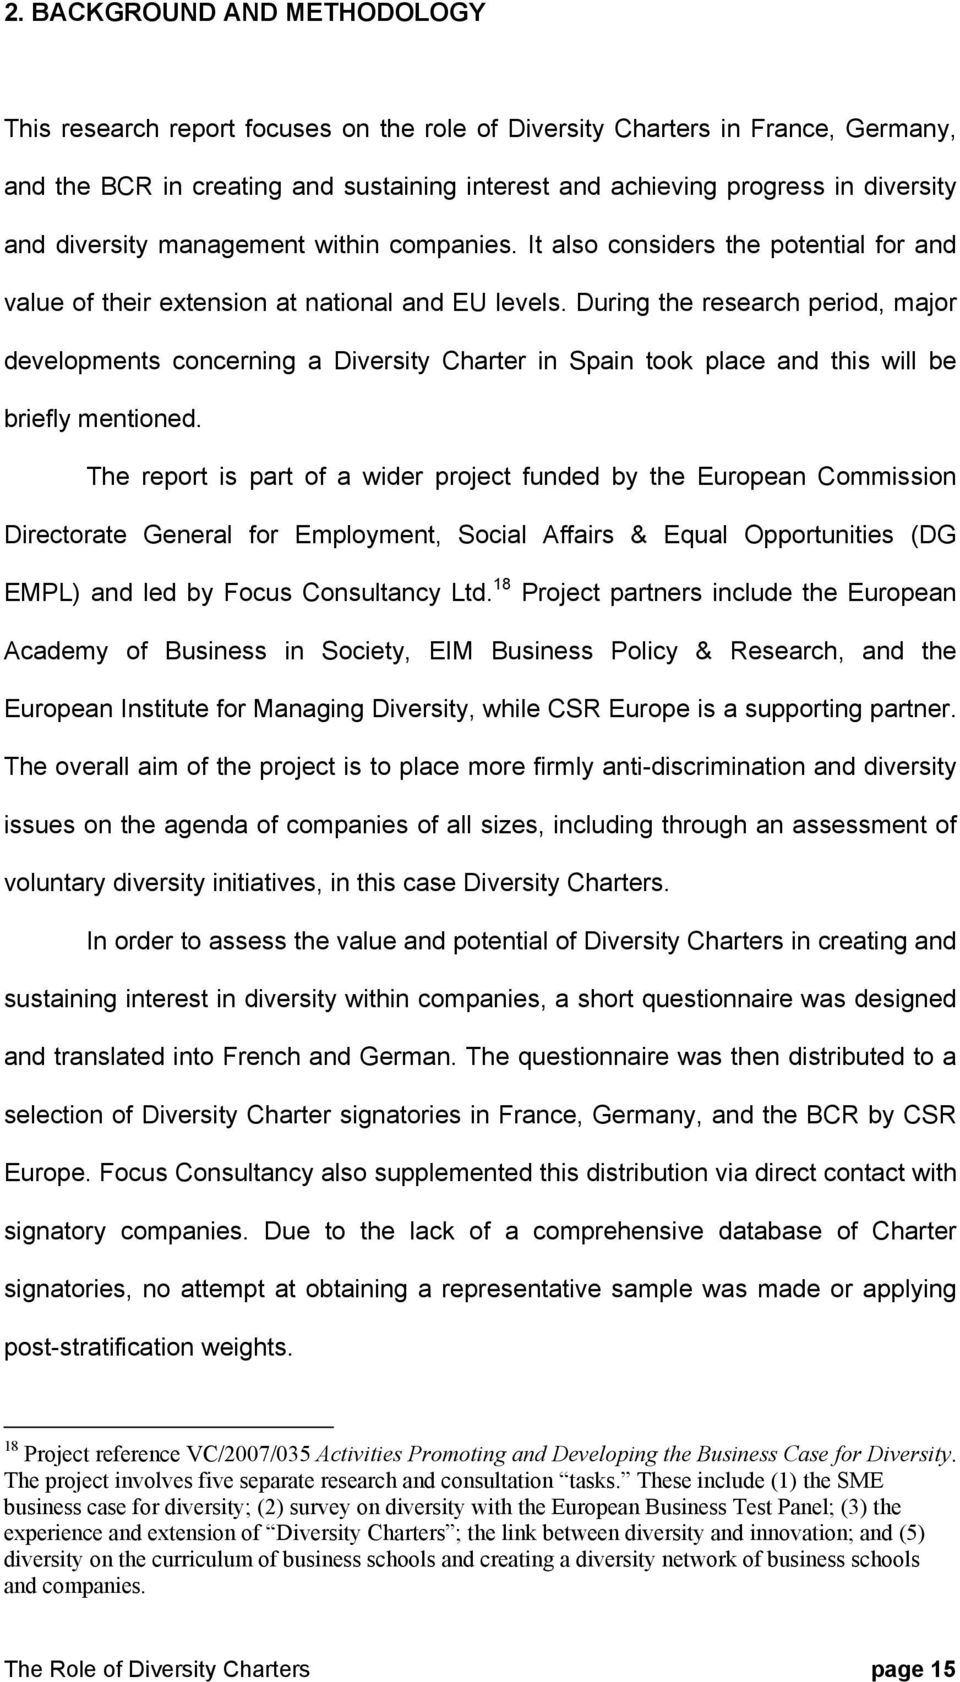 During the research period, major developments concerning a Diversity Charter in Spain took place and this will be briefly mentioned.